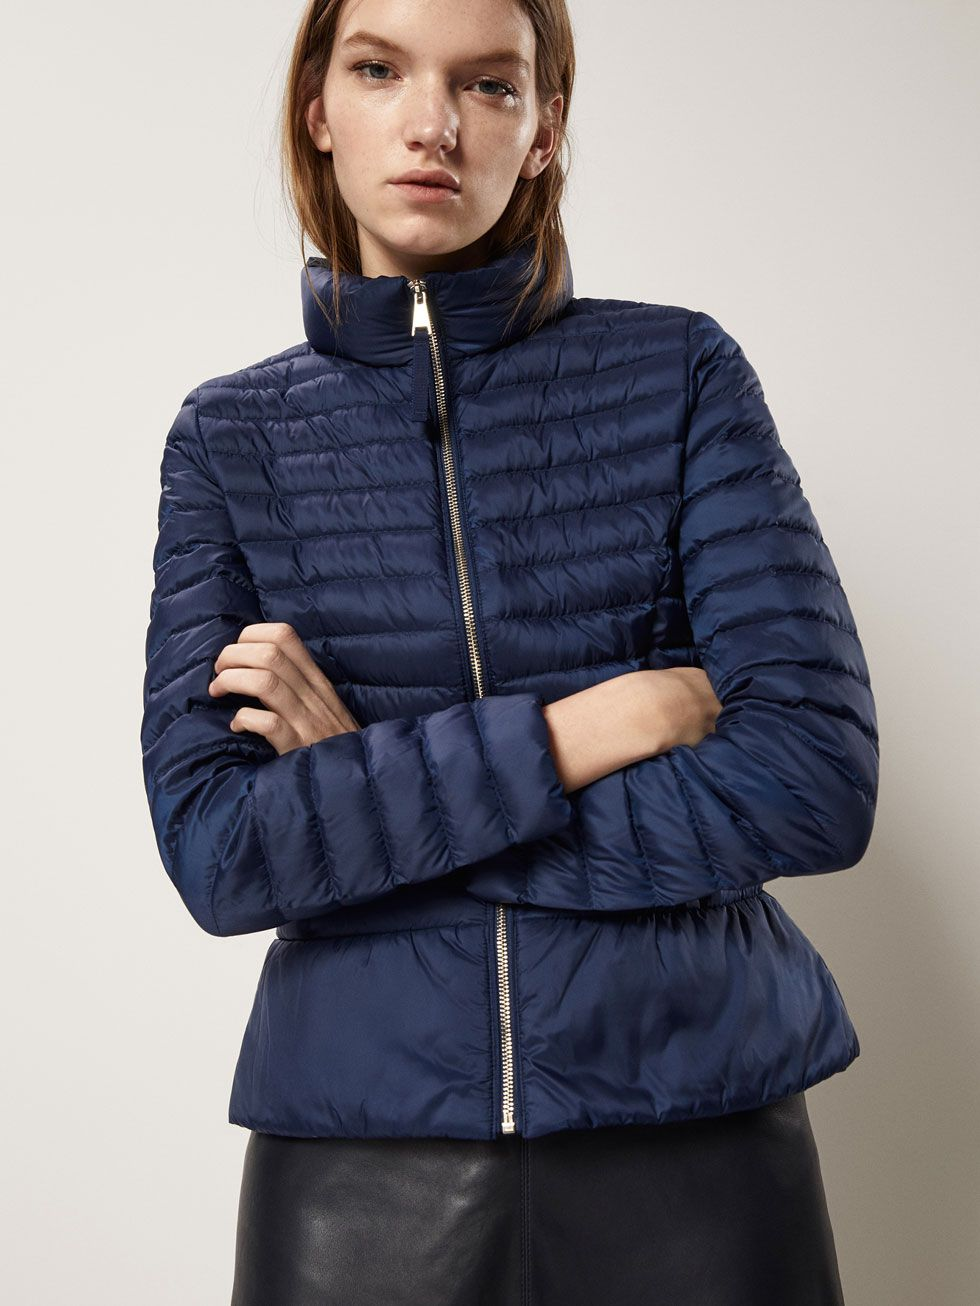 acf7f571043 EMBELLISHED QUILTED DOWN JACKET - Women - Massimo Dutti | to wear ...